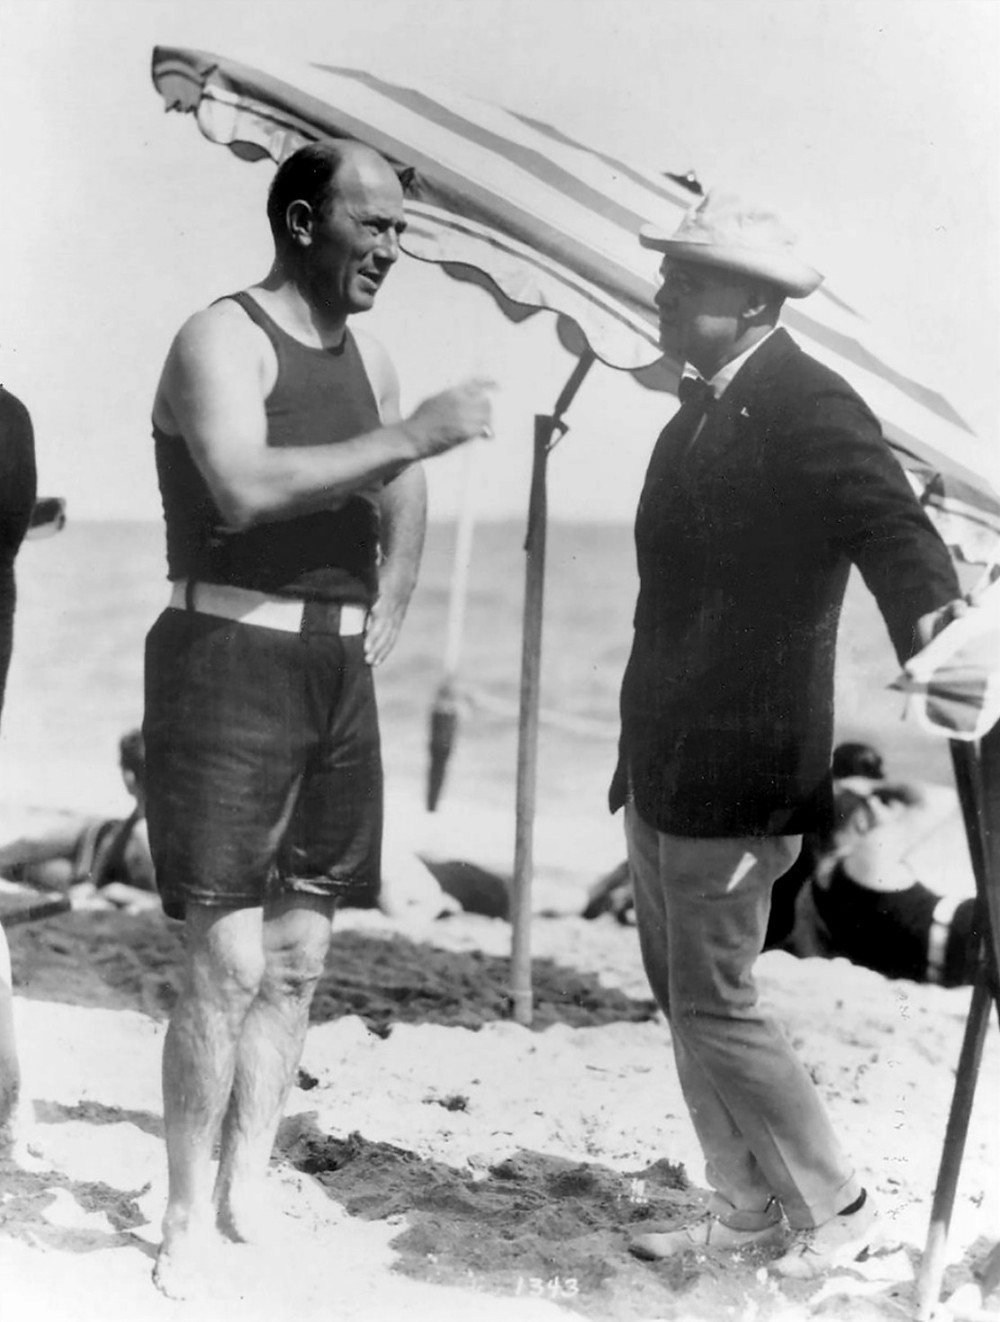 Carl Fisher pictured wearing the black bathing suit with white belt, his left finger pointing toward a photographer with whom he was having a conversation